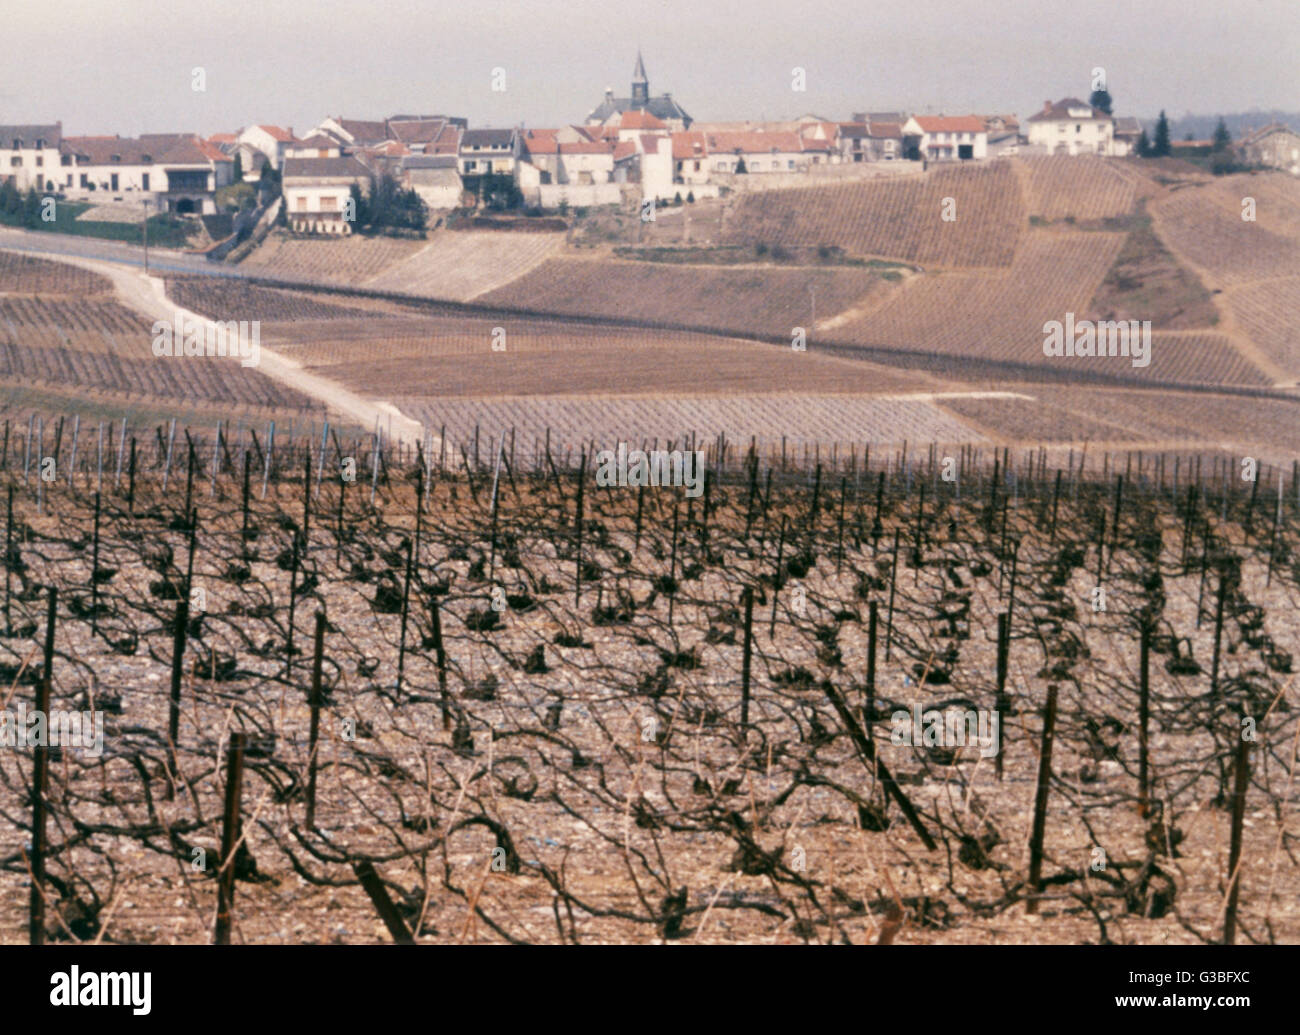 A champagne vineyard near  Epernay.        Date: 1987 - Stock Image